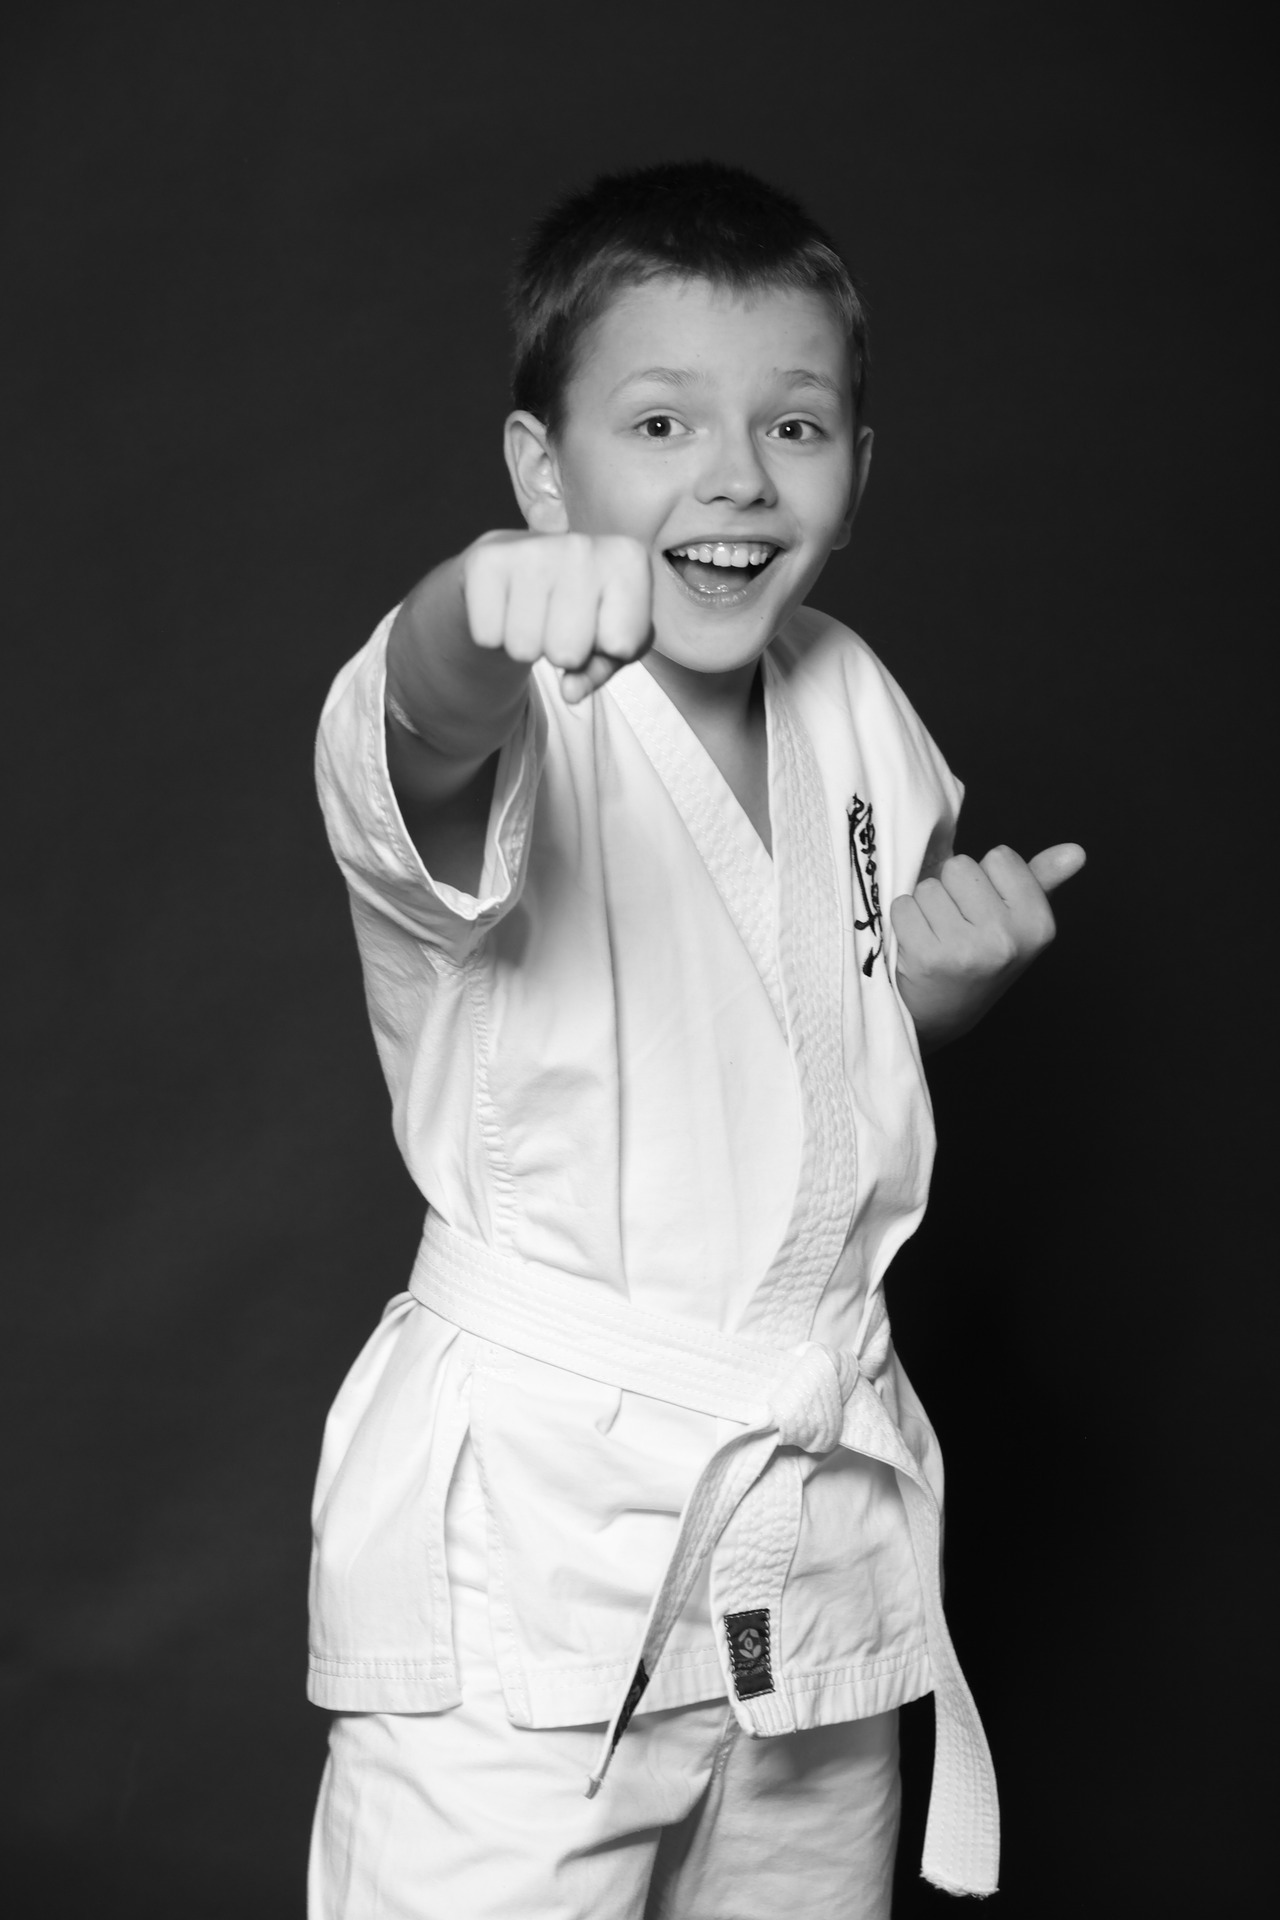 The pros and cons of kids learning toddler karate